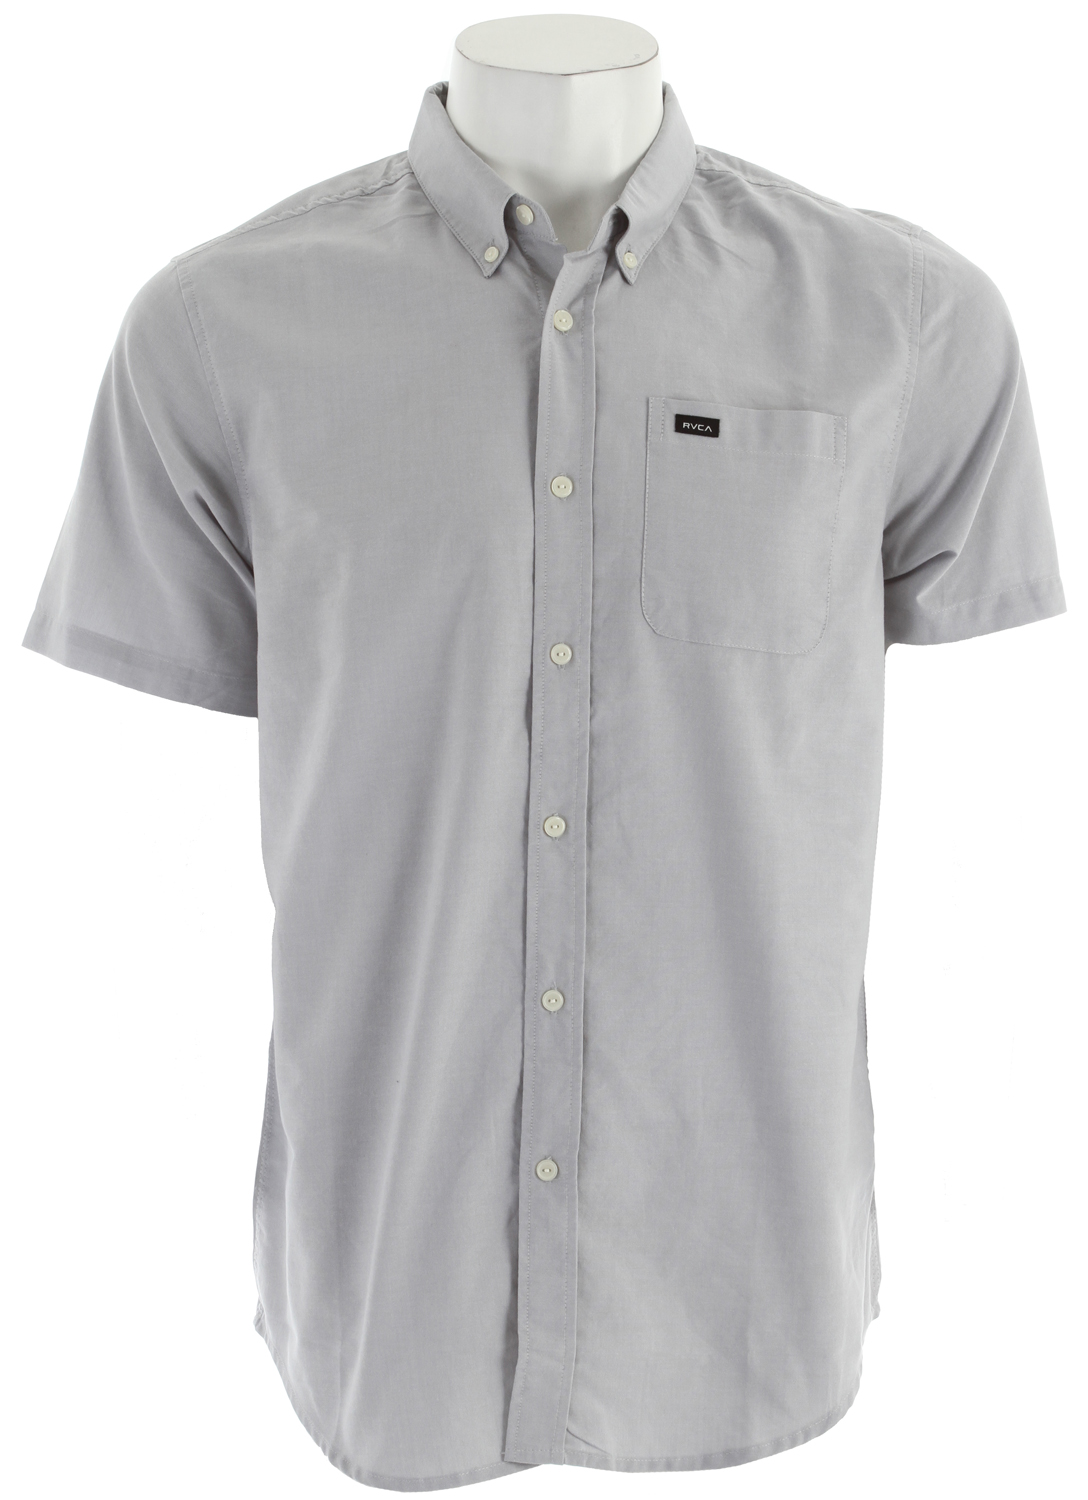 Key Features of the RVCA That'll Do Oxford Shirt: Slim fit 60% cotton/40% polyester oxford Short sleeve woven button down shirt One patch pocket at left chest with RVCA solo label Buttons at collar points - $33.95